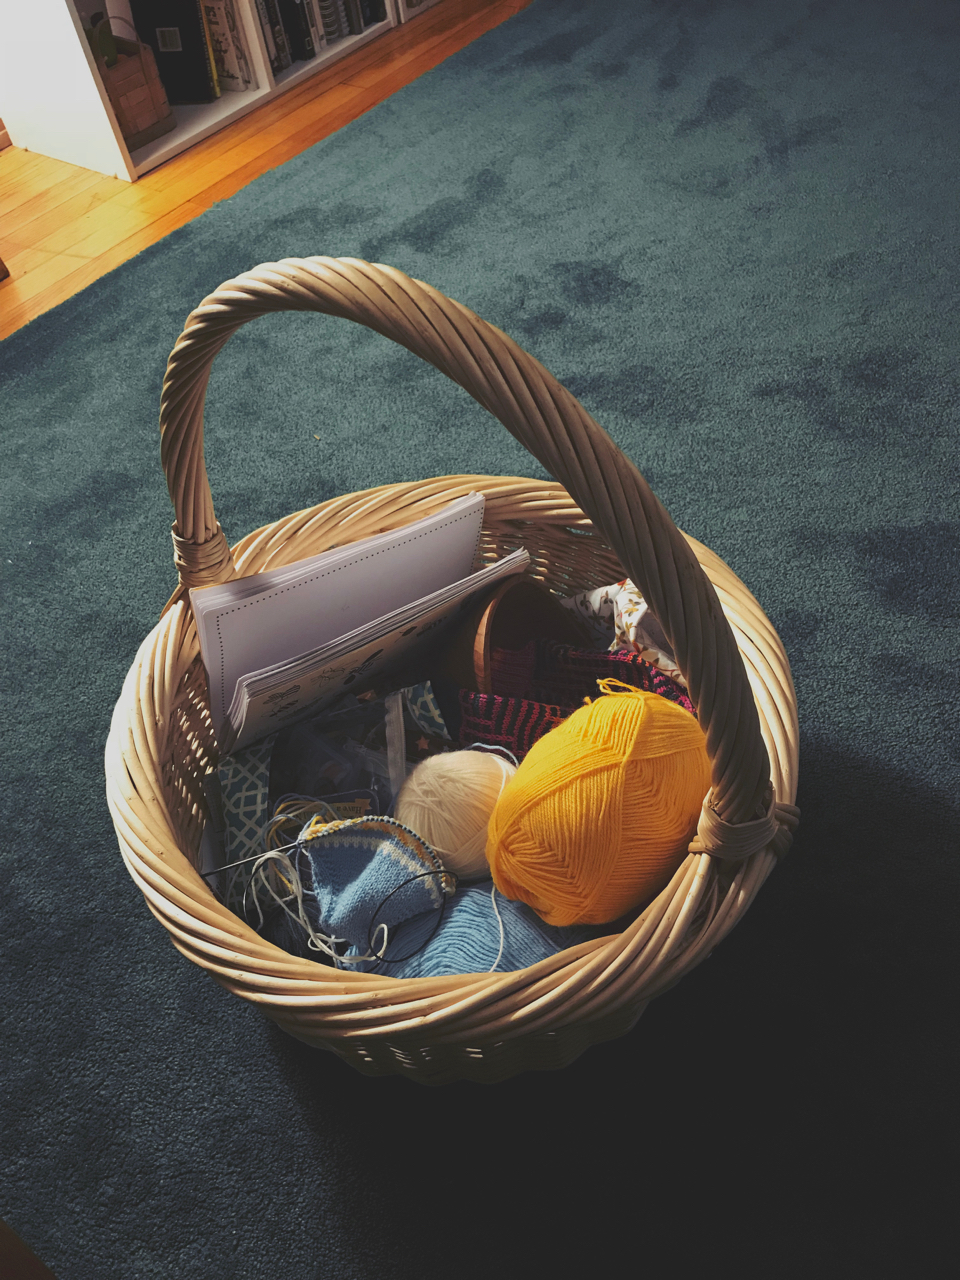 Easter Basket. Madison, Wisconsin. February 2018. © William D. Walker